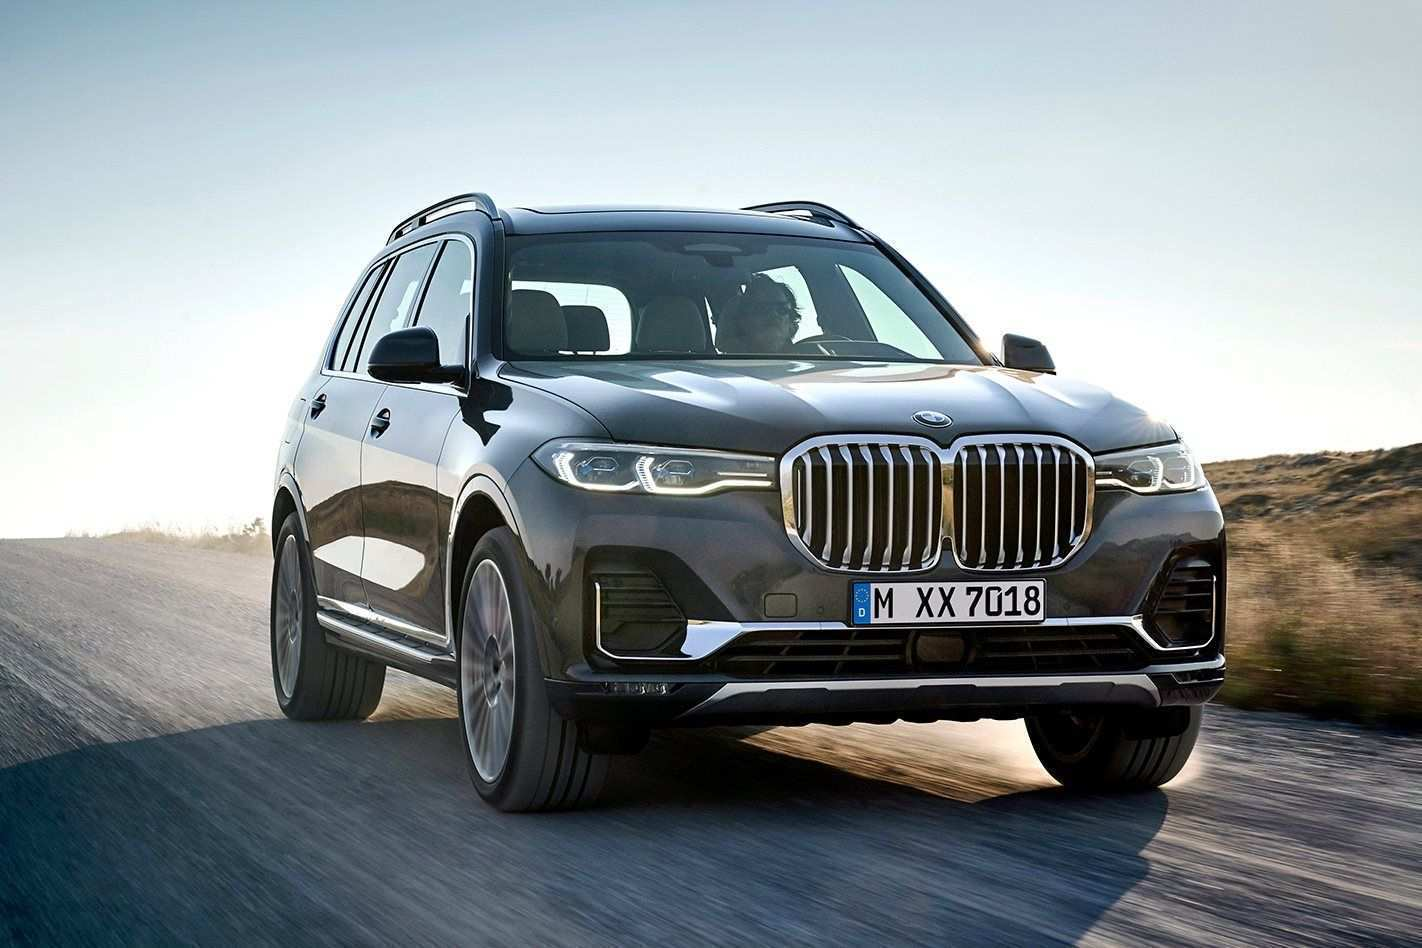 63 All New 2018 Vs 2019 Bmw Terrain Exterior And Interior